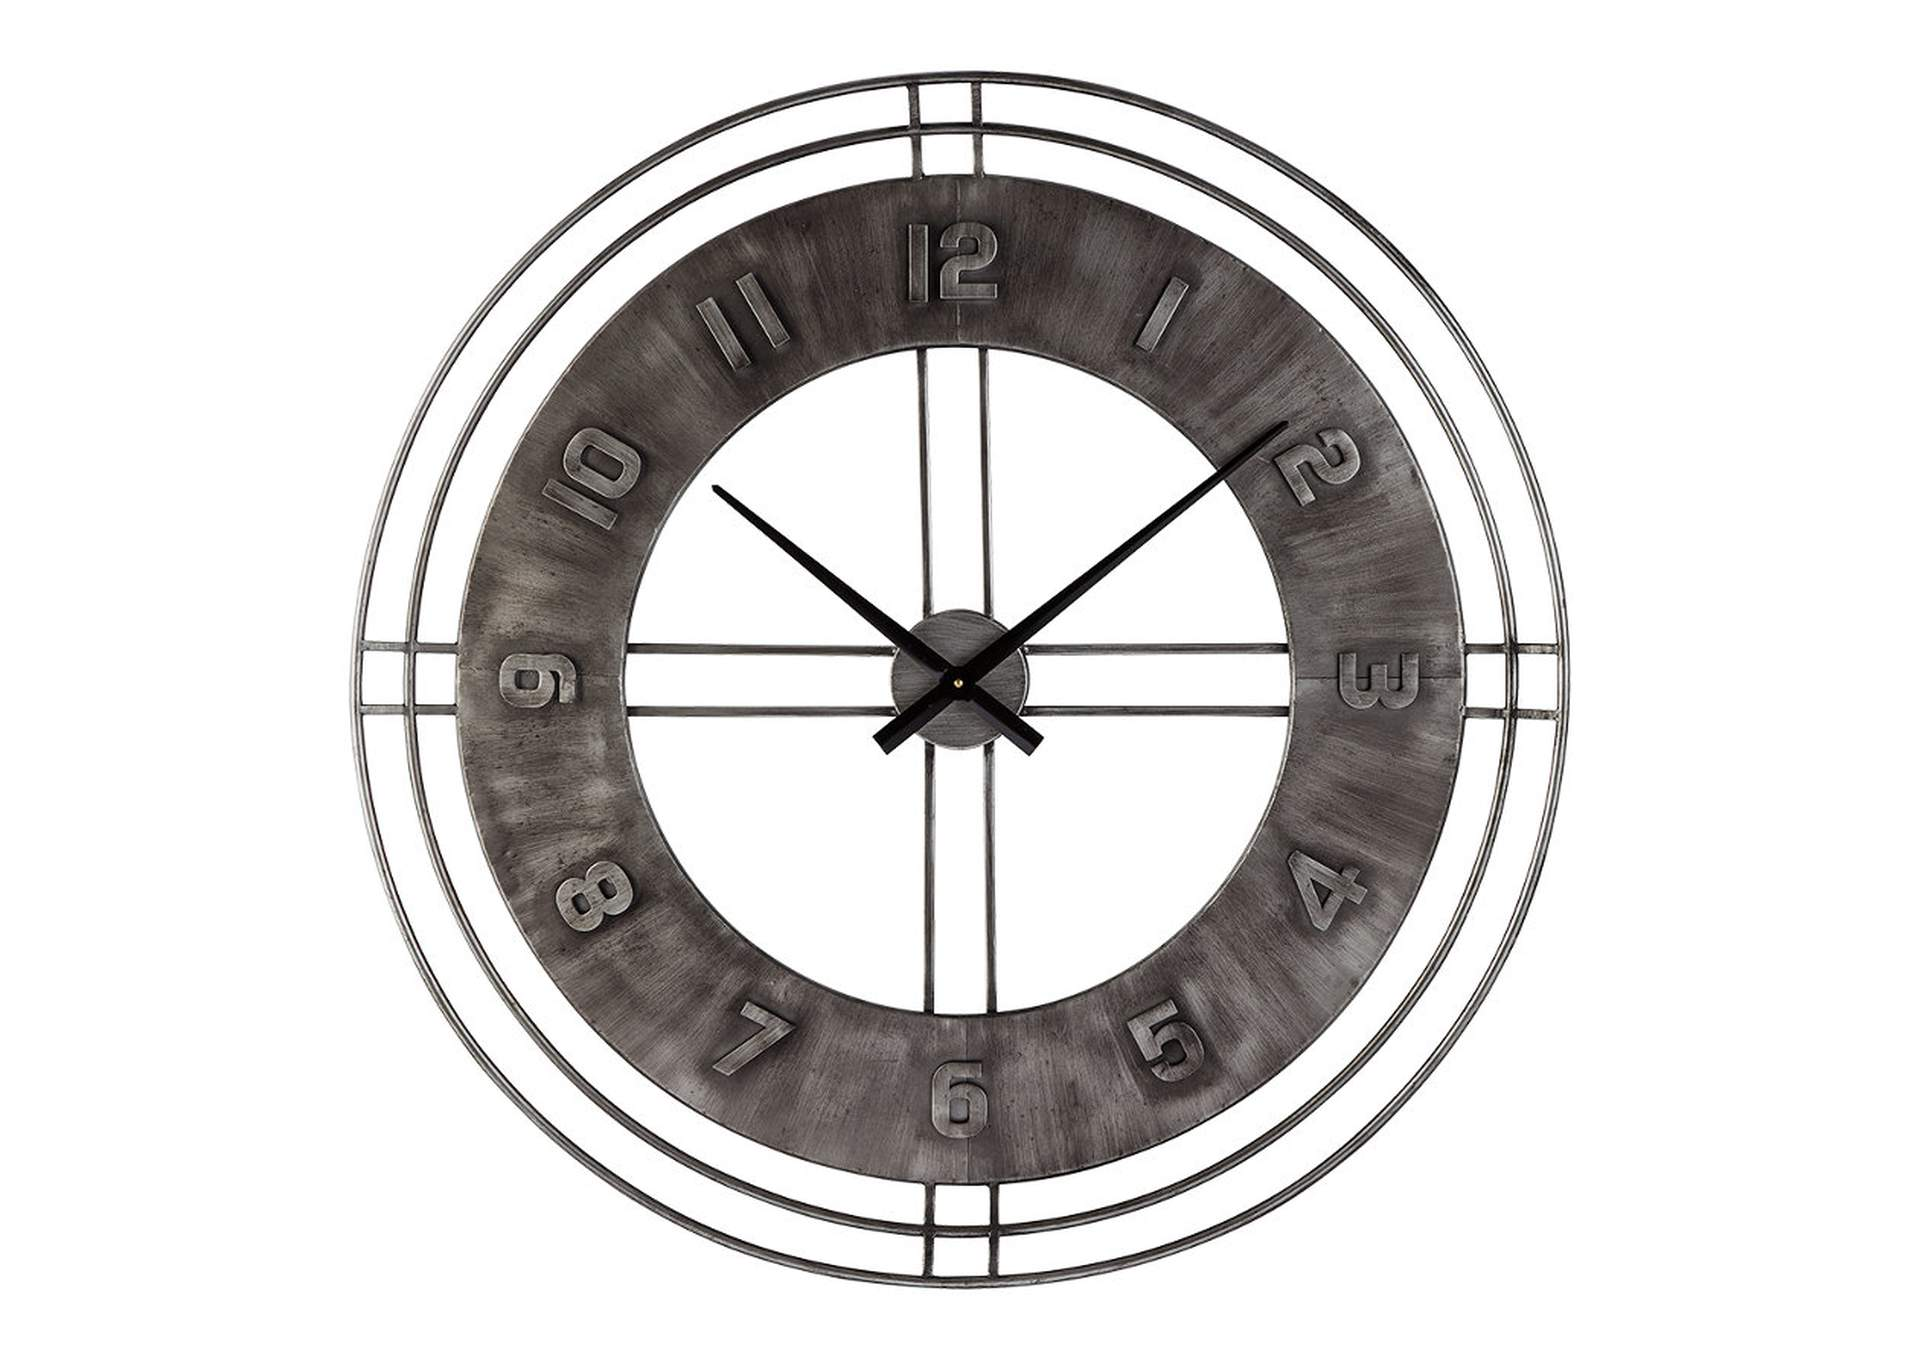 Ana Sofia Antique Gray Wall Clock,Direct To Consumer Express